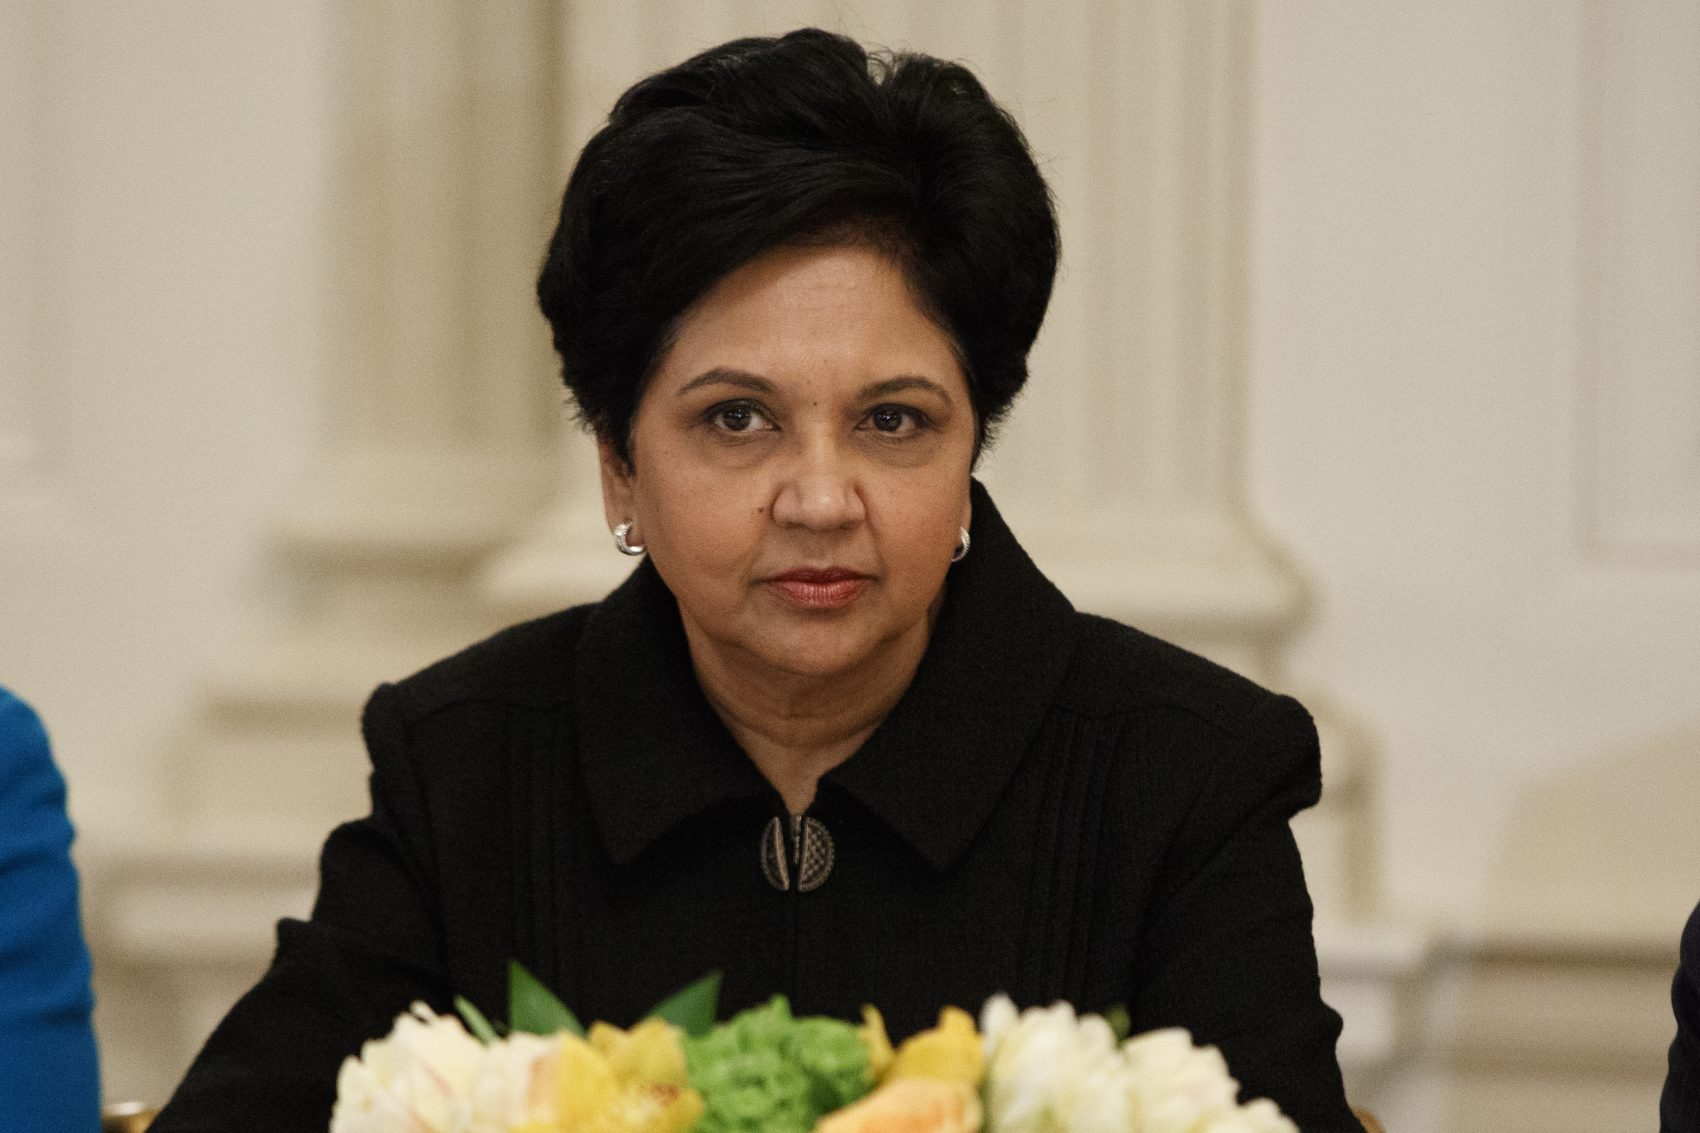 PepsiCo CEO Indra Nooyi listens during a meeting between President Donald Trump and business leaders in the State Dining Room of the White House in Washington, Friday, Feb. 3, 2017. (Evan Vucci/AP)